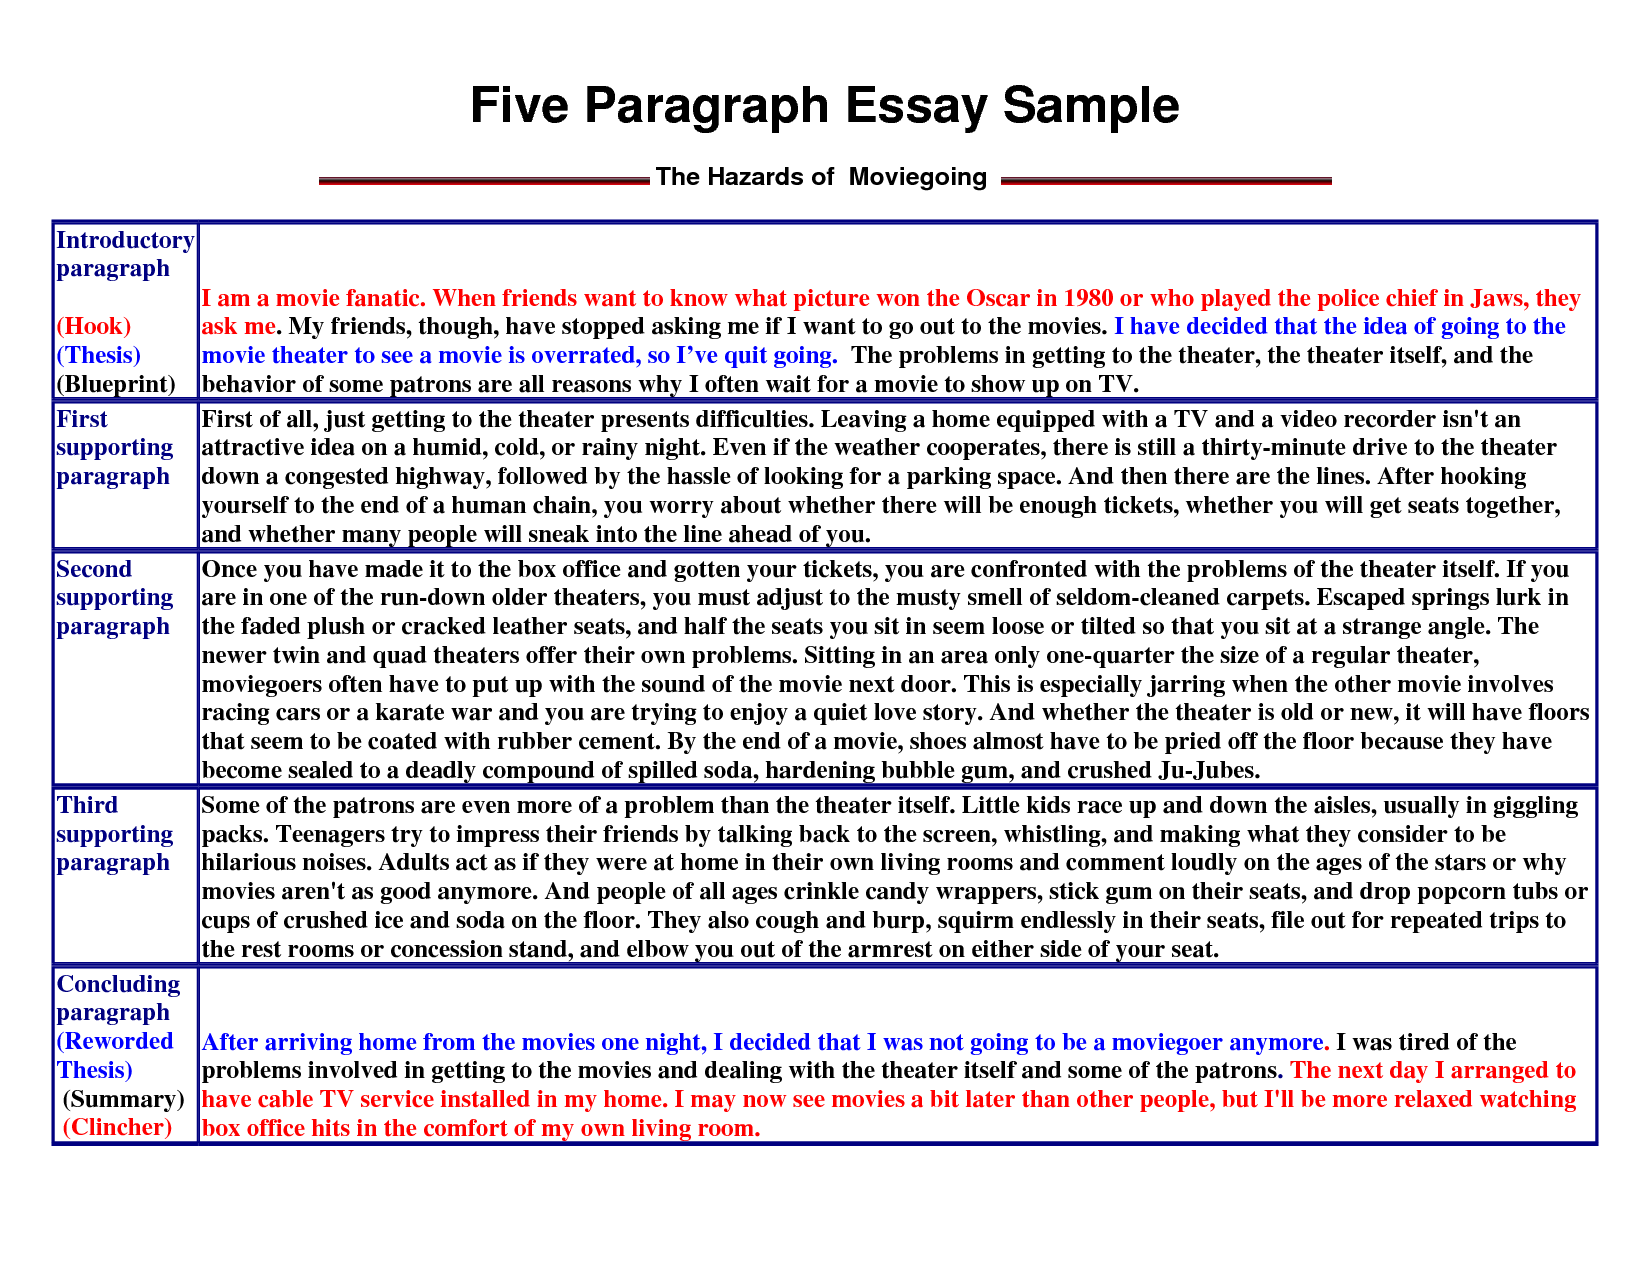 how to decide off a brilliant paragraph in an assay